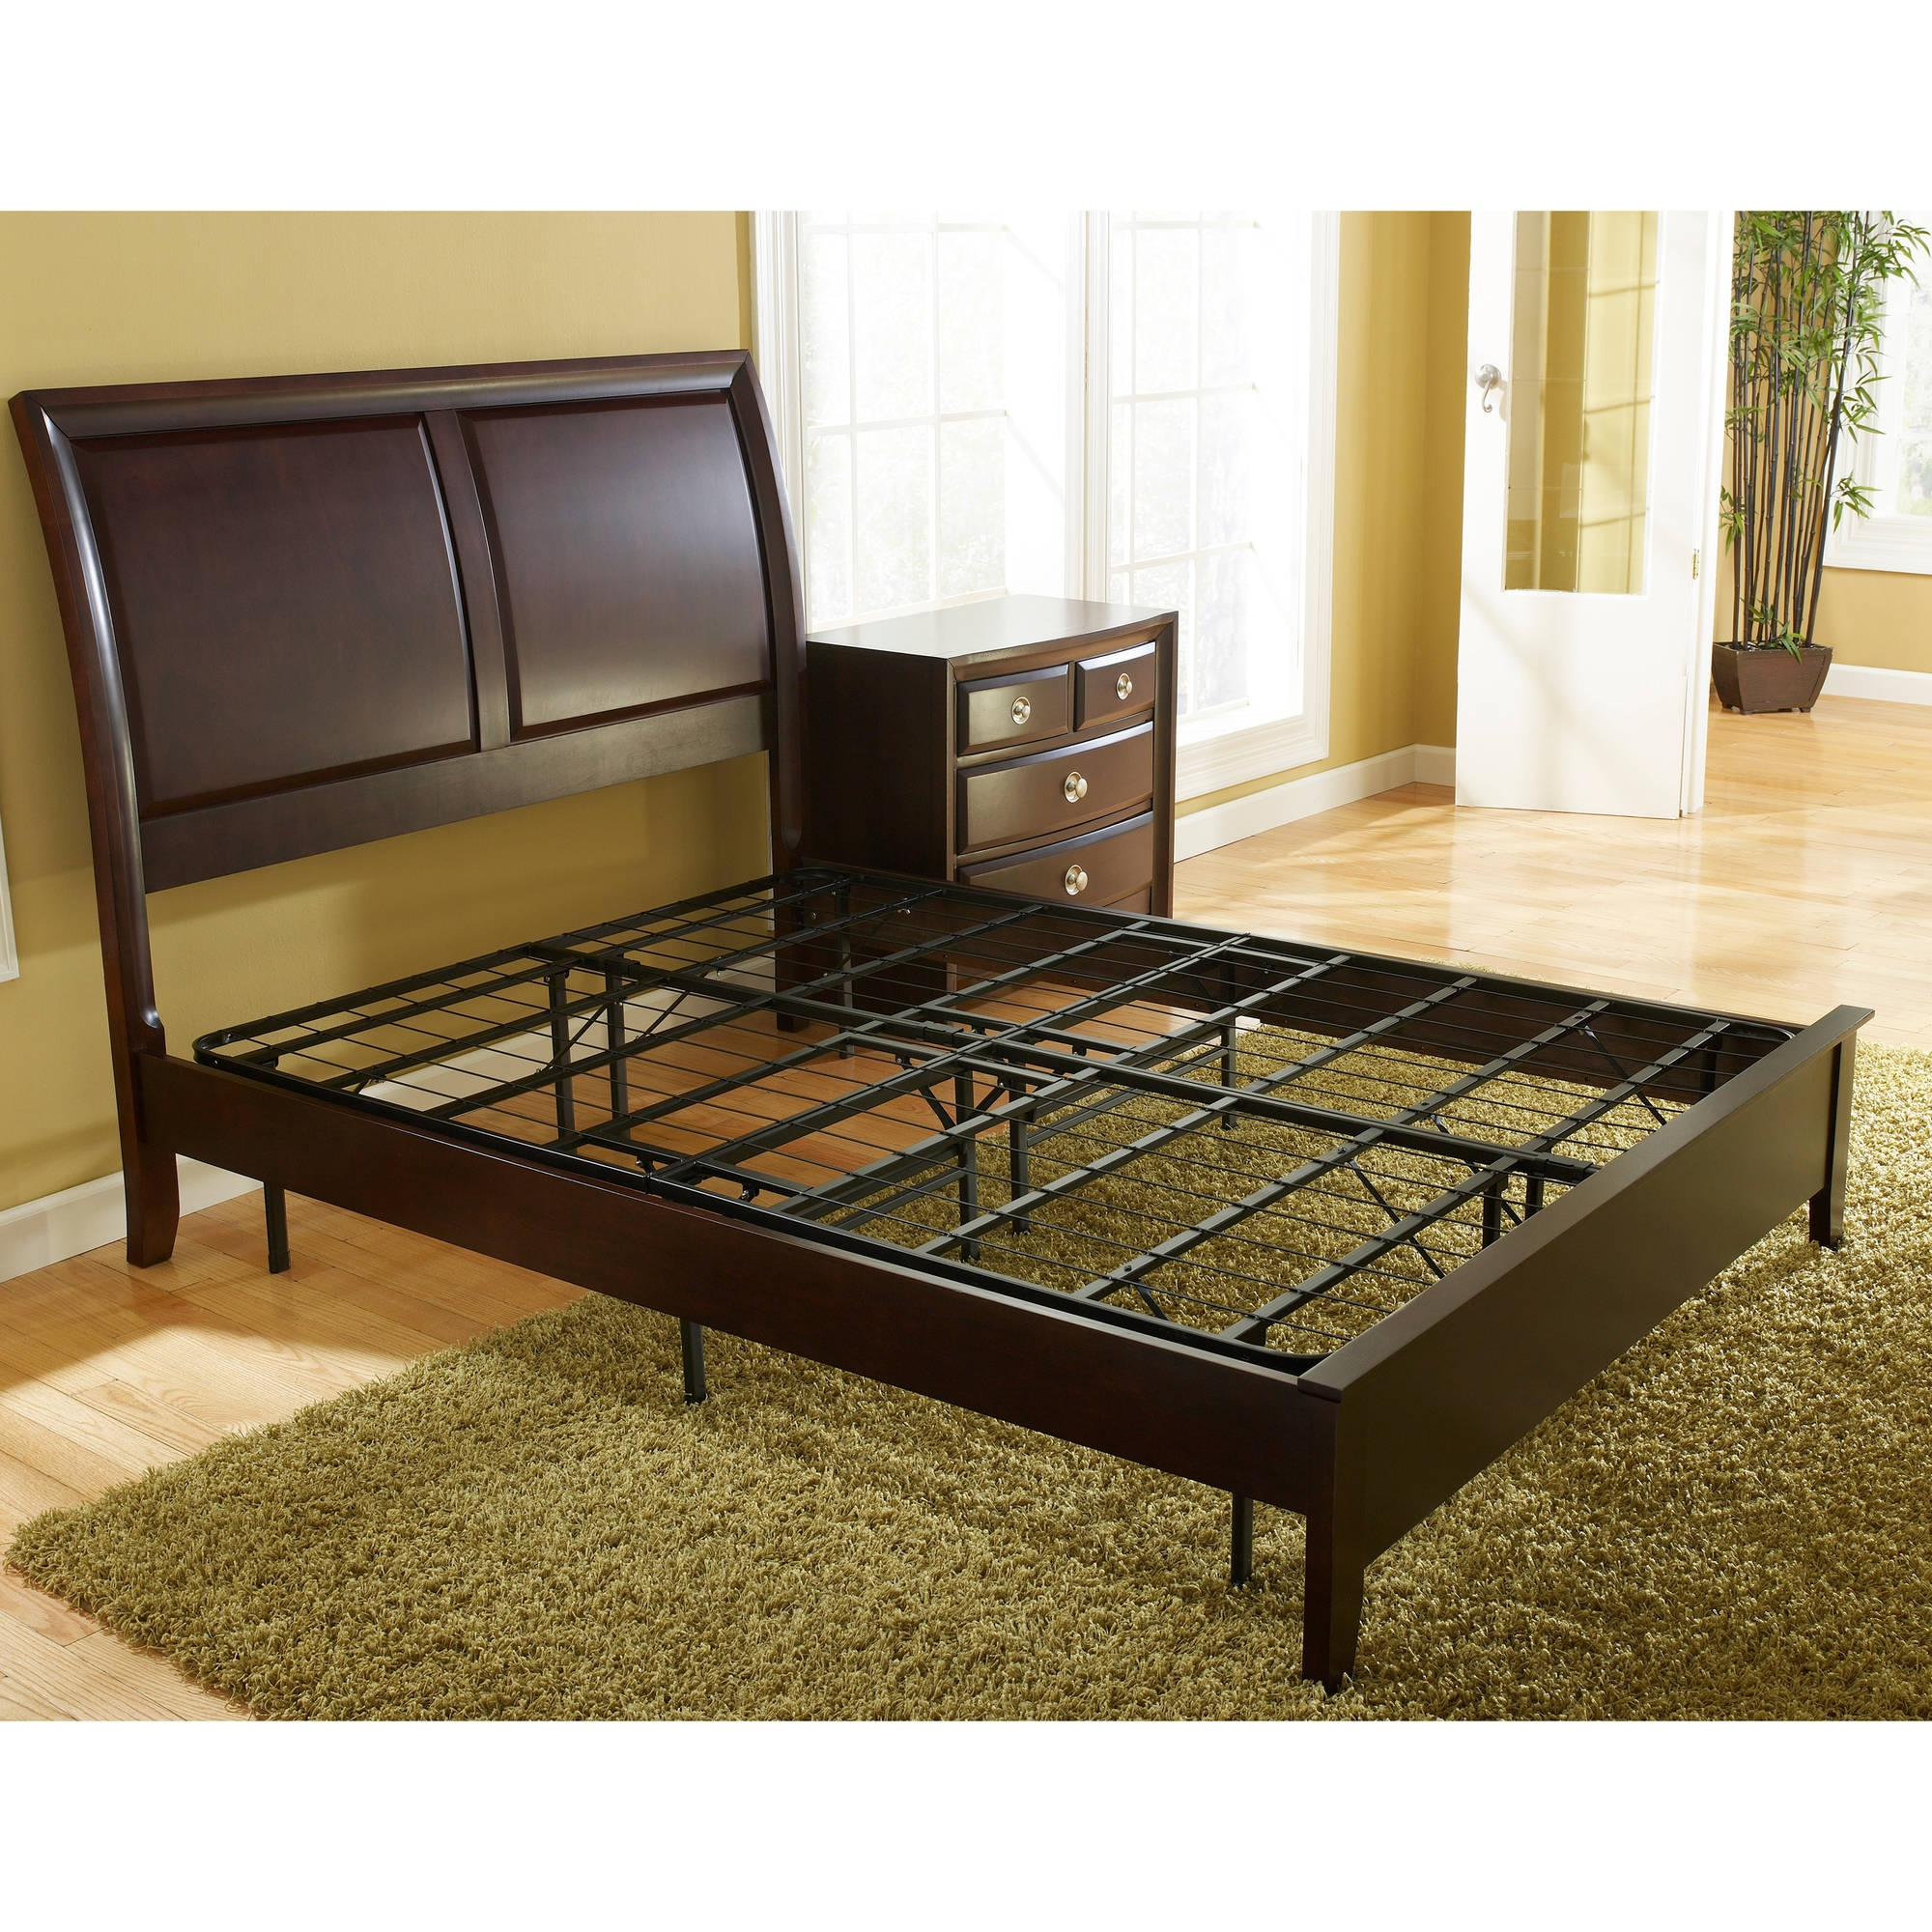 Permalink to Metal Bed Frame With Headboard And Footboard Attachments